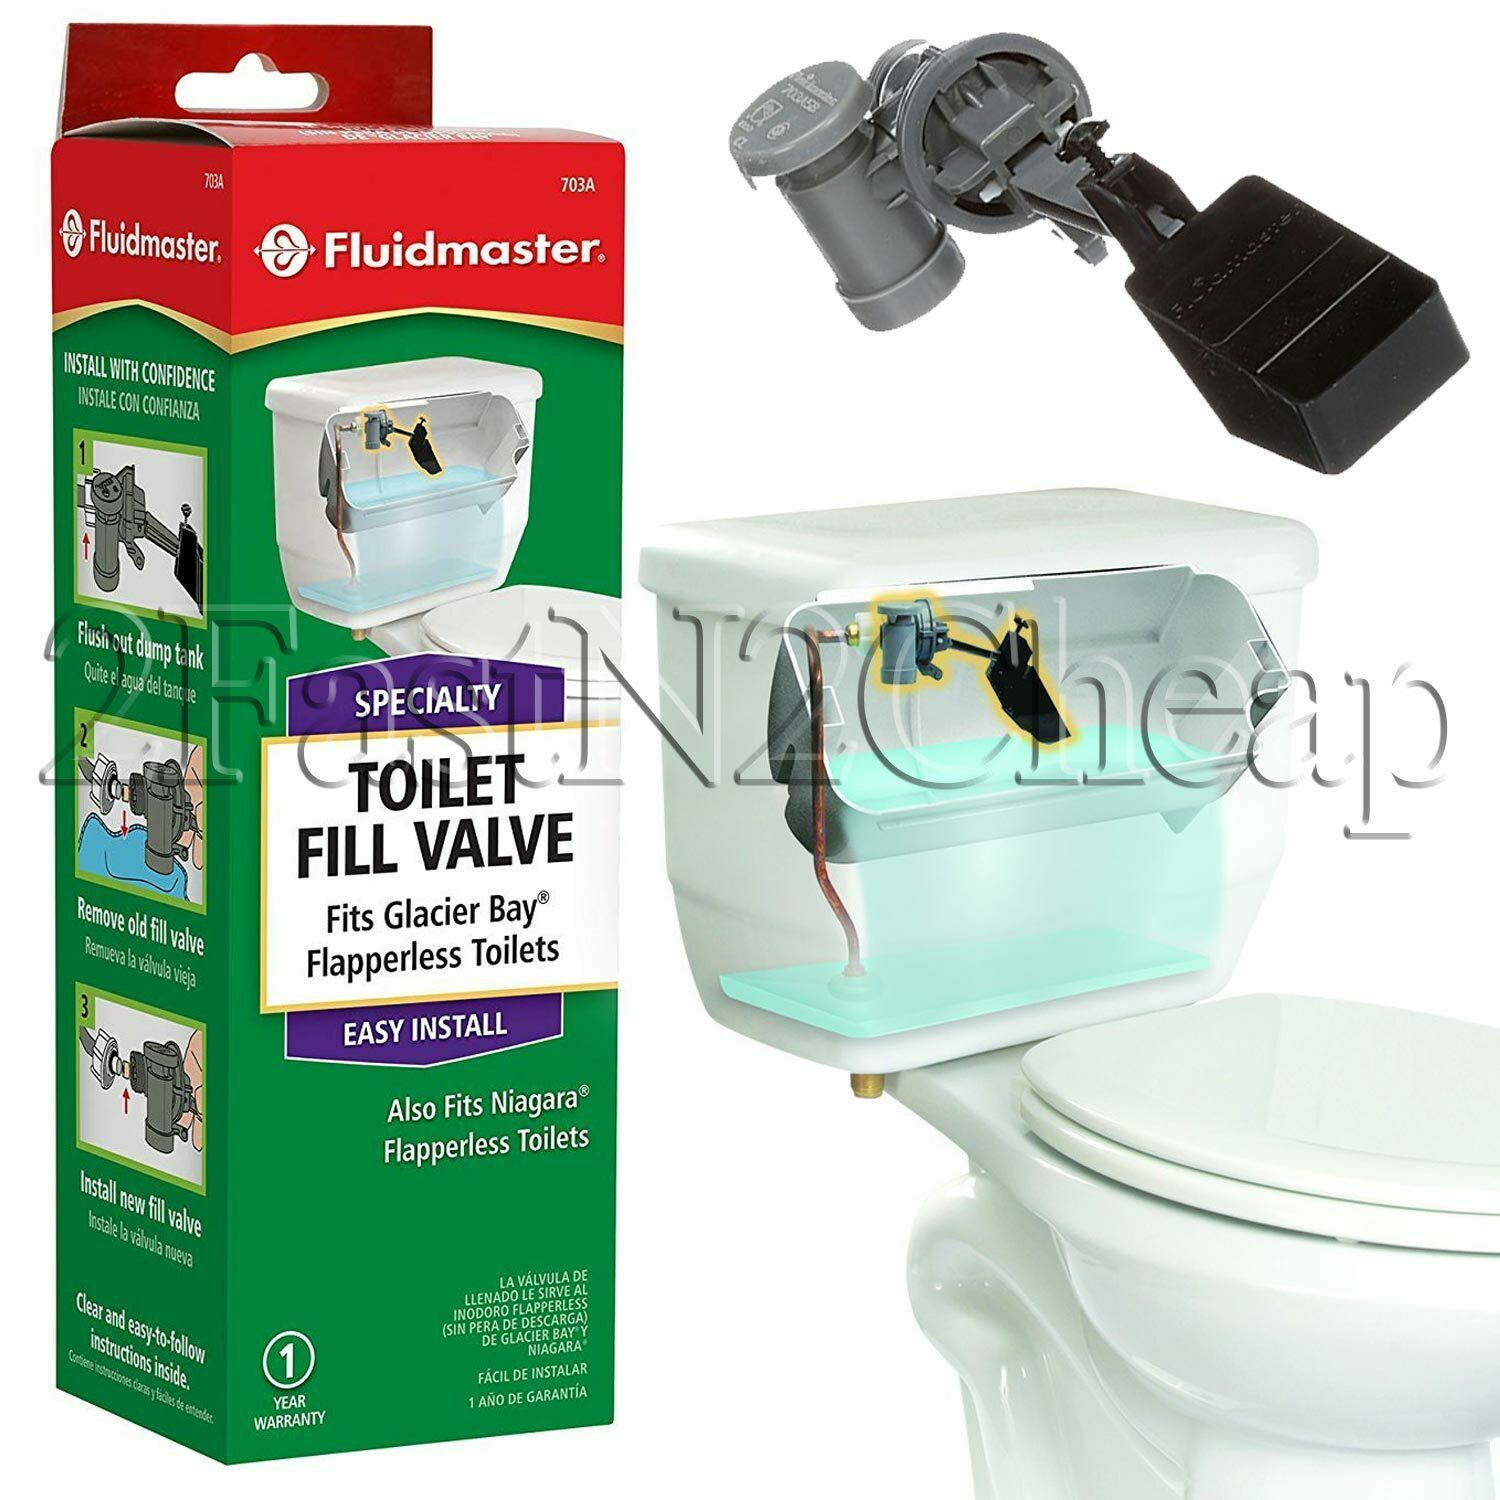 Https Ift Tt 2l7hlxc Toilets Ideas Of Toilets Toilets Replacement 703a5b Fill Valve Glacier Bay Niag Toilet Fill Valve Fill Valve Home Depot Toilets